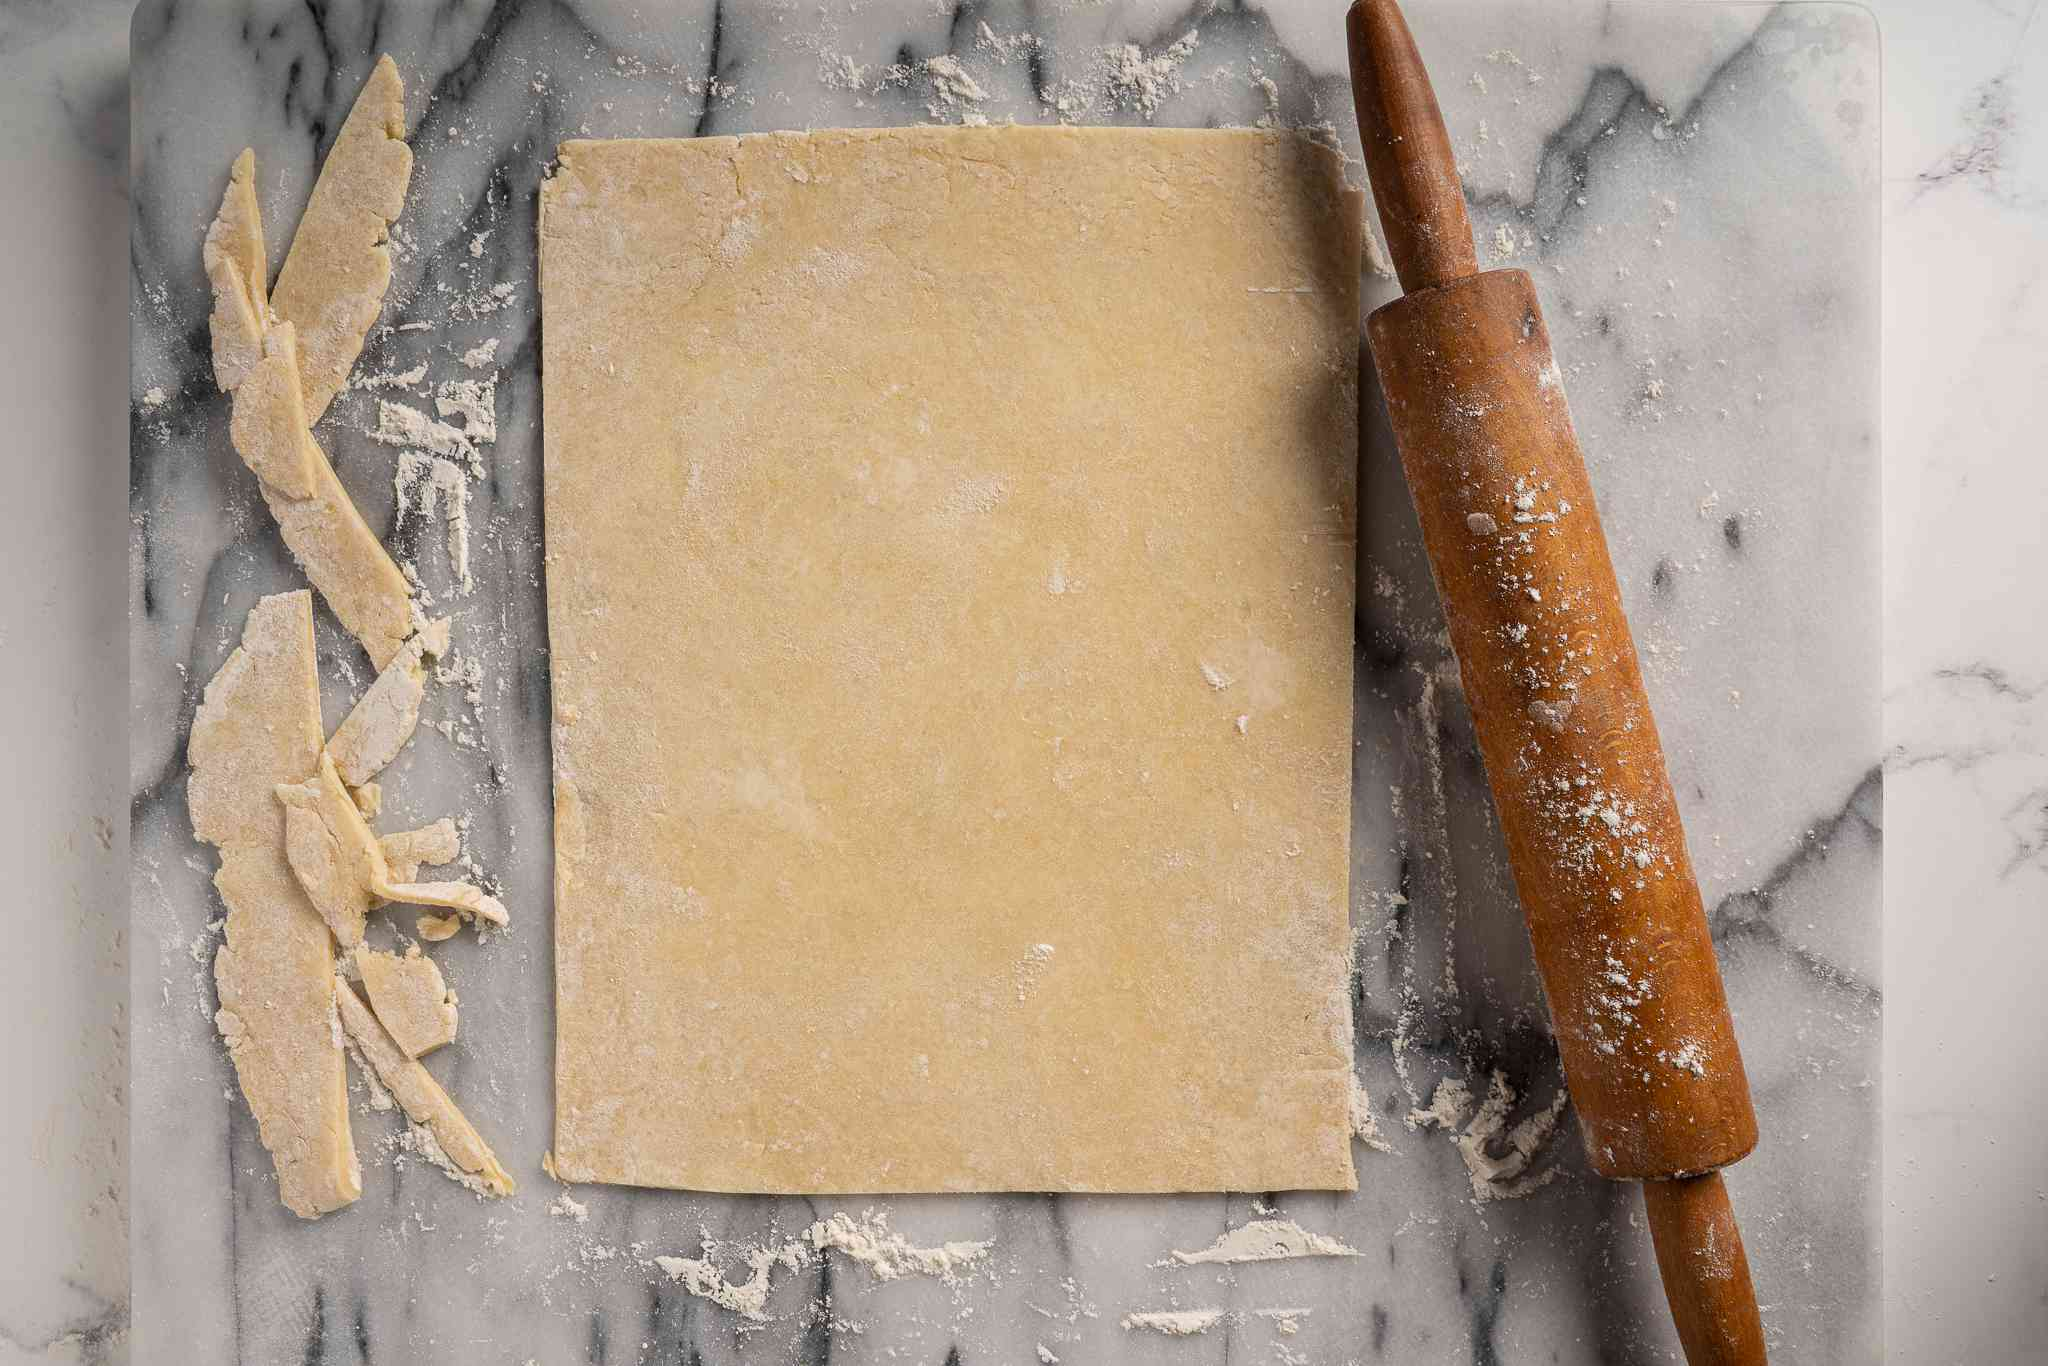 Pastry dough rolled out into a big rectangle on a floured surface